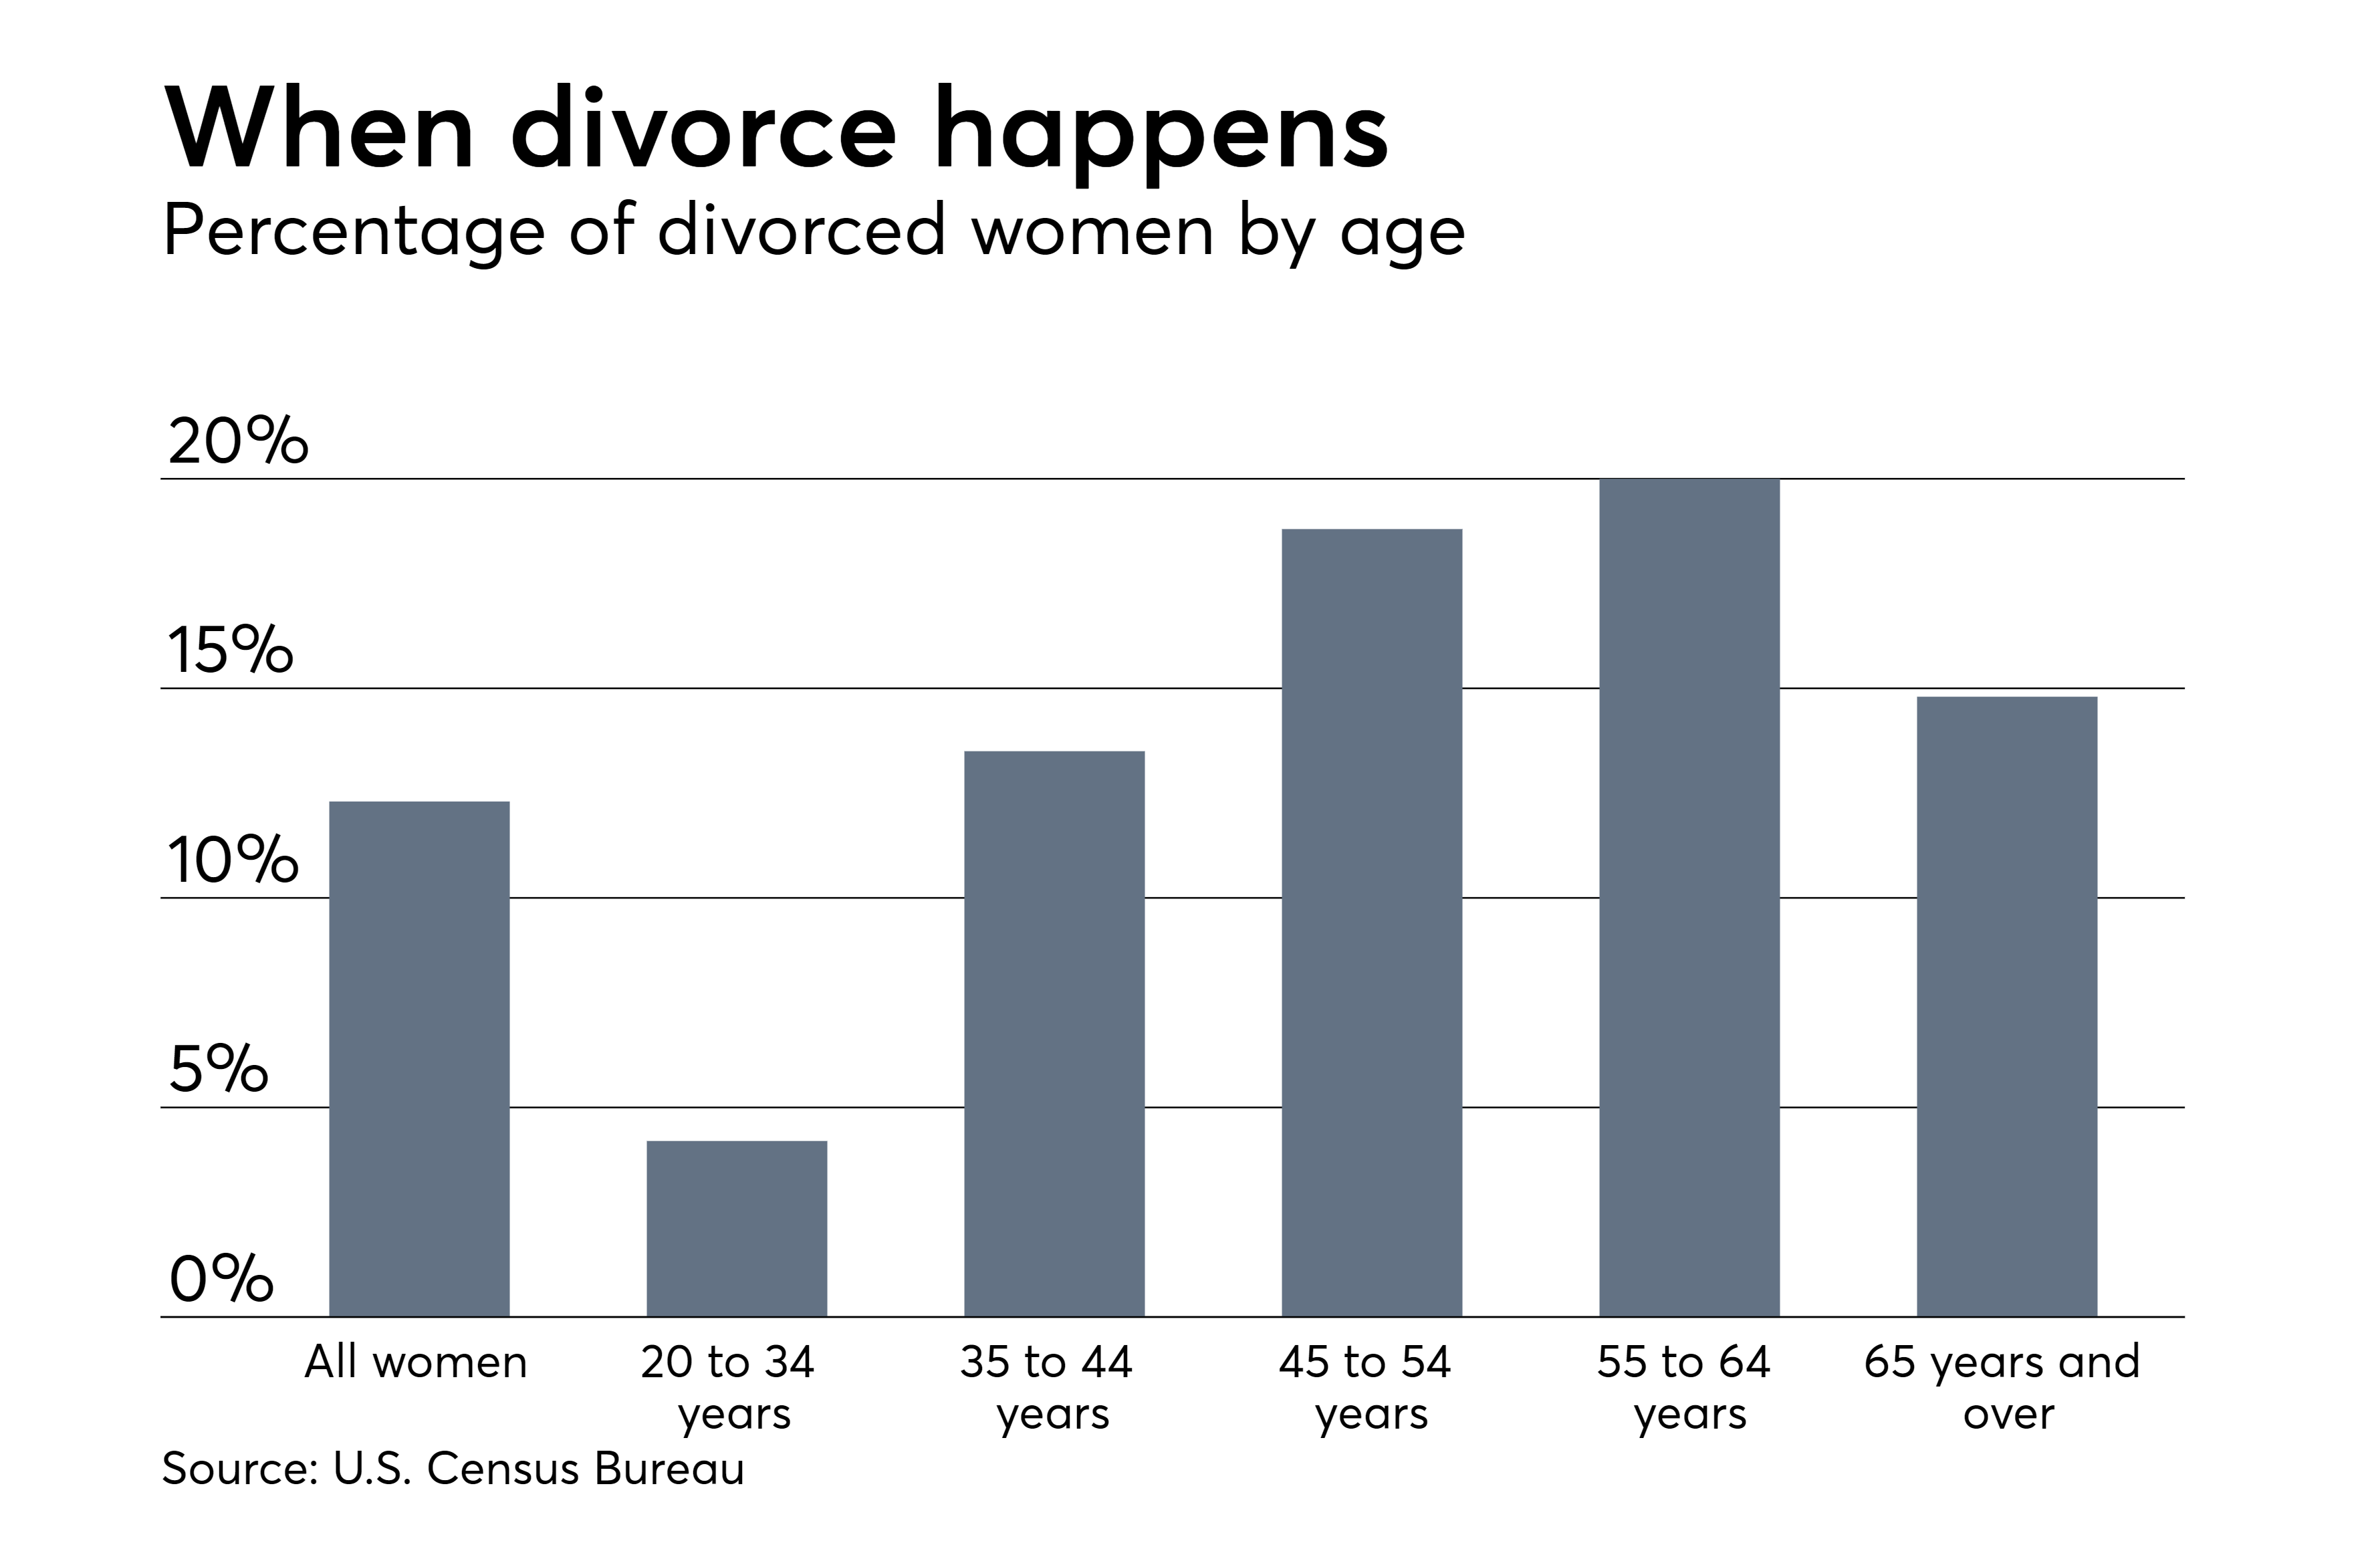 https://assets.sourcemedia.com/ec/b1/37a8c1d44fcba05fd15fd099ed9a/divorce-rates-among-u.S.%20women%20by%20age%20Census%20Bureau%20data.png